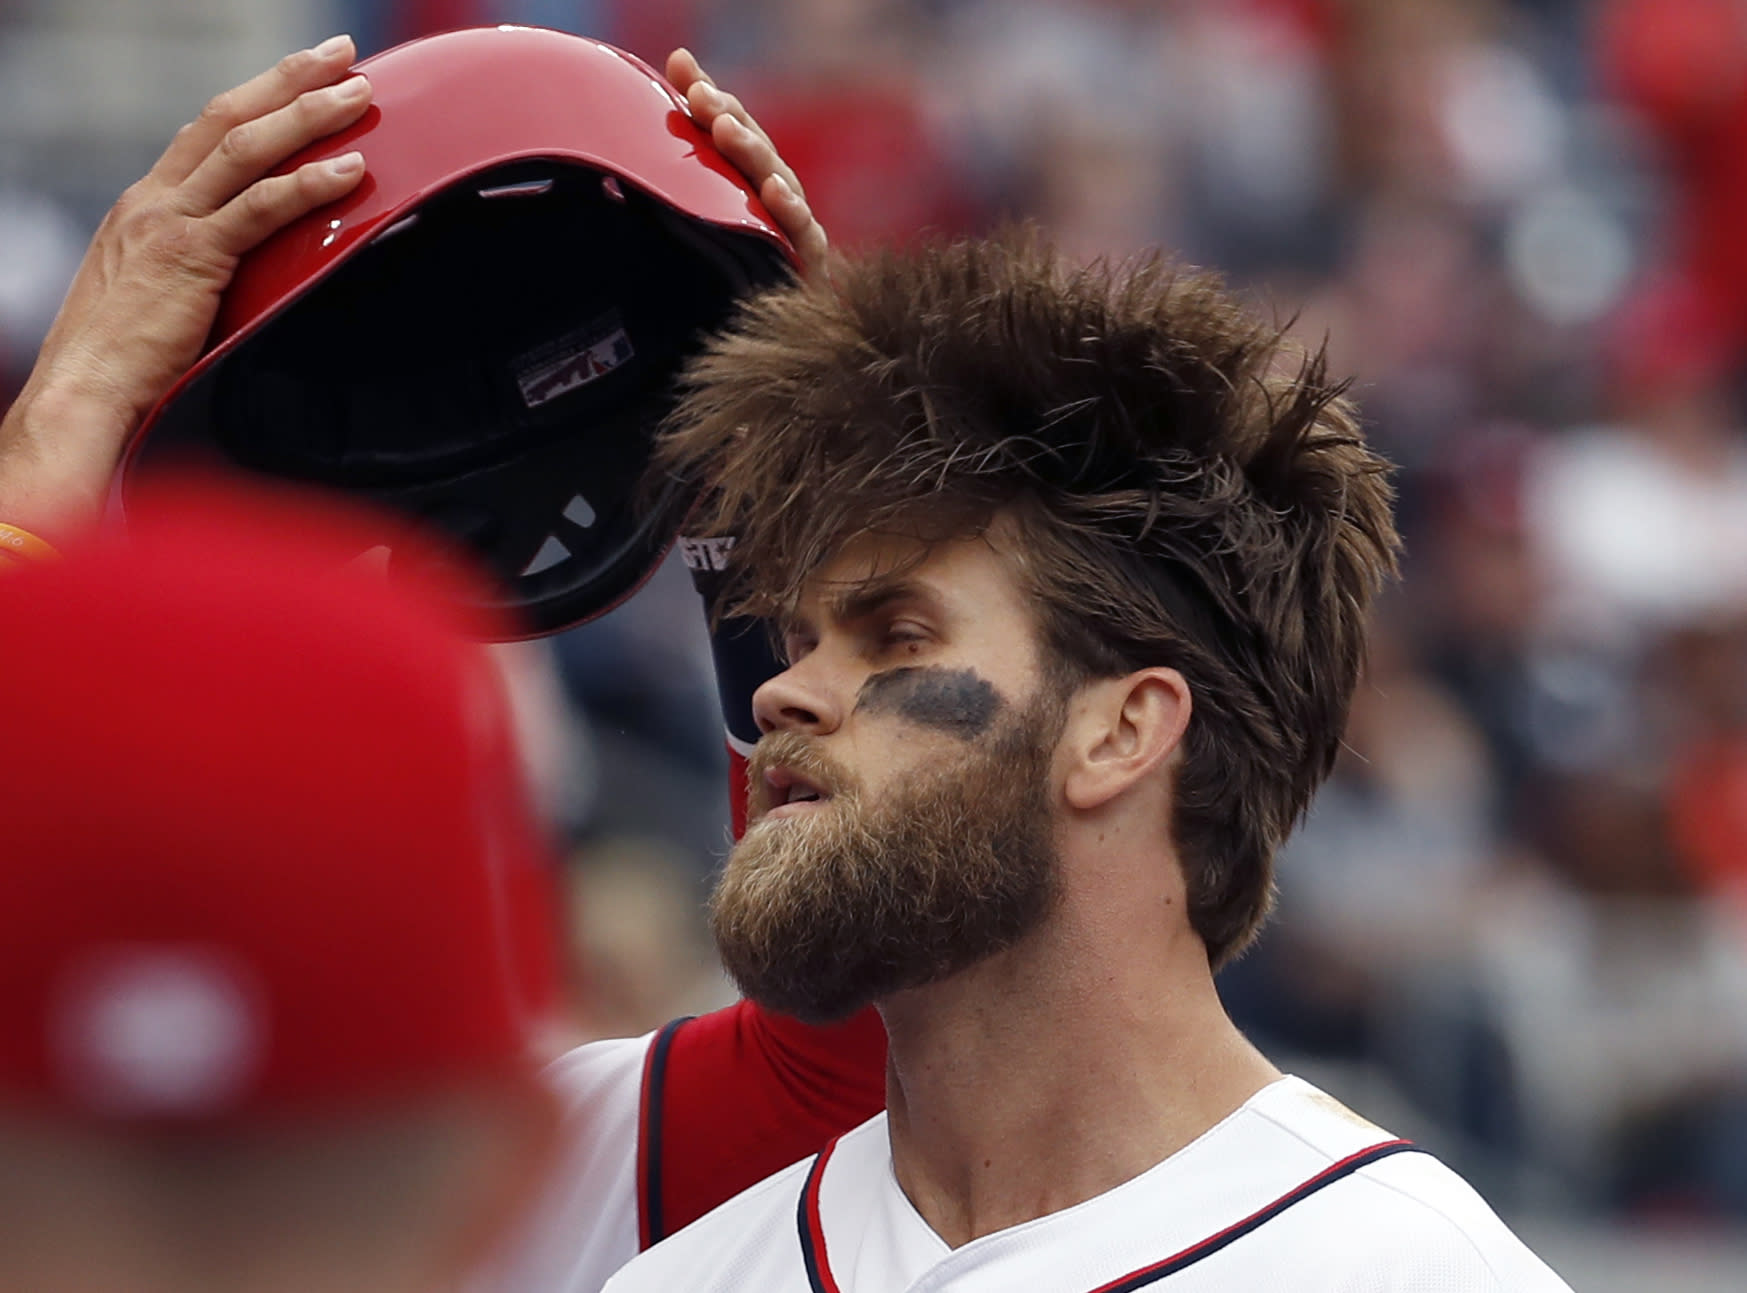 Bryce Harper Appears To Be Rocking Cornrows Now For Some Reason